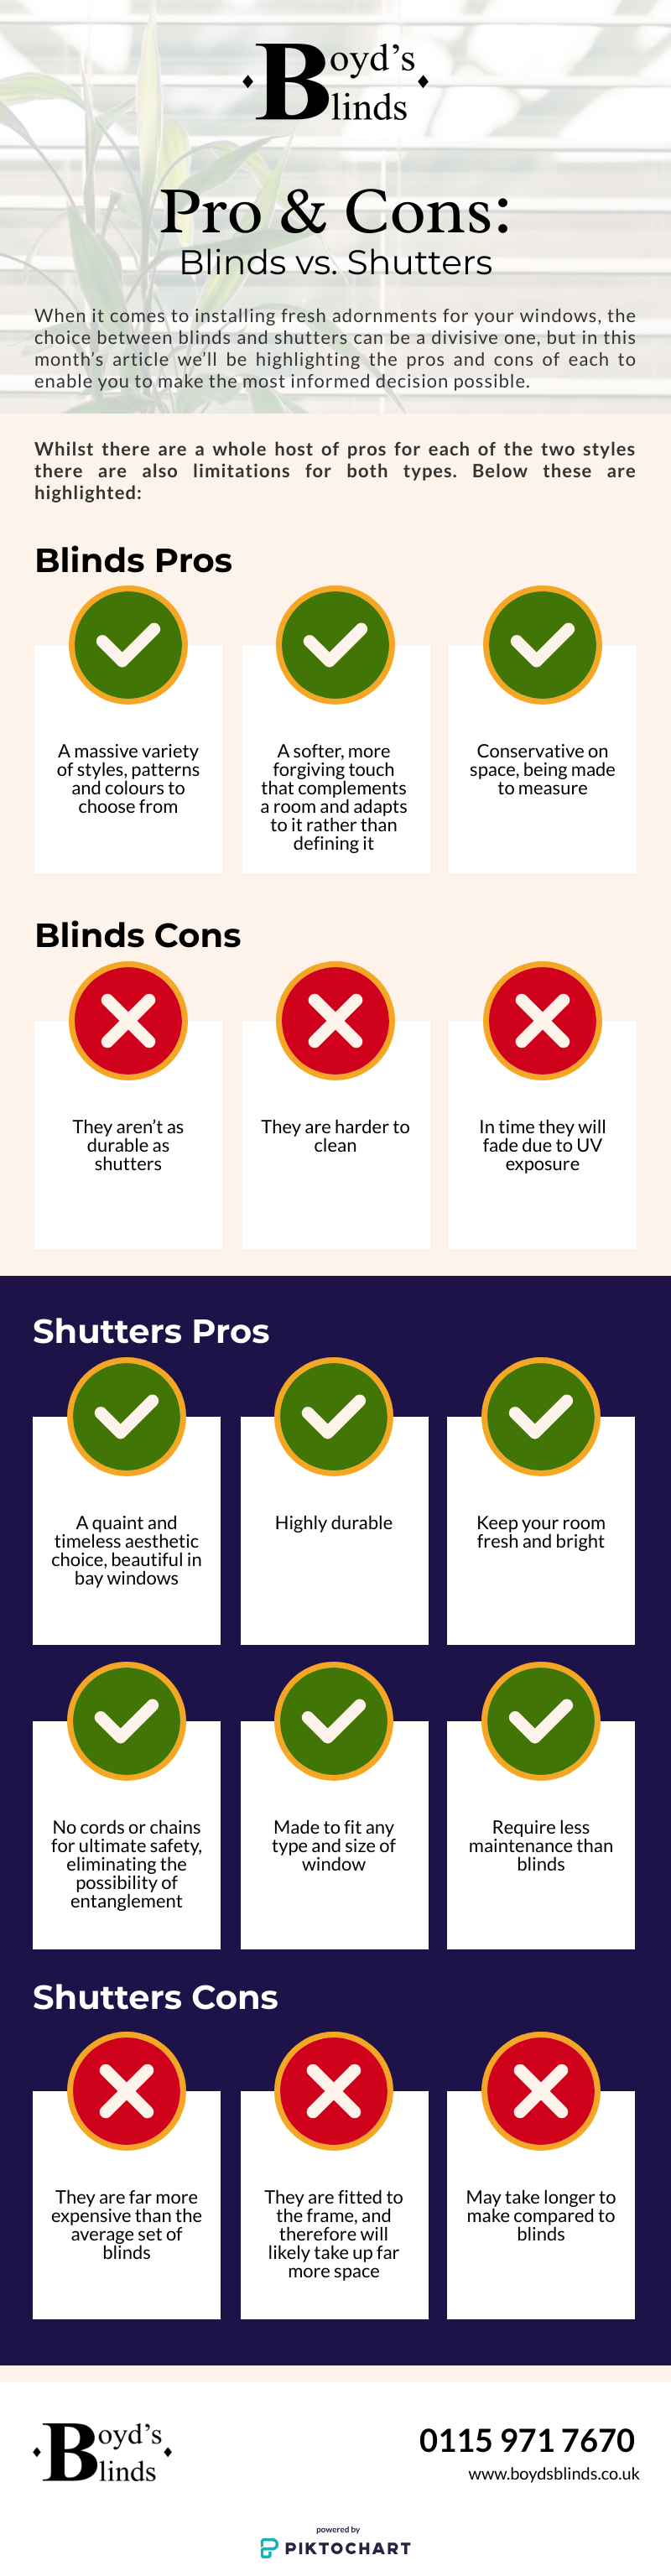 Pros & Cons: Blinds vs Shutters (Infographic)